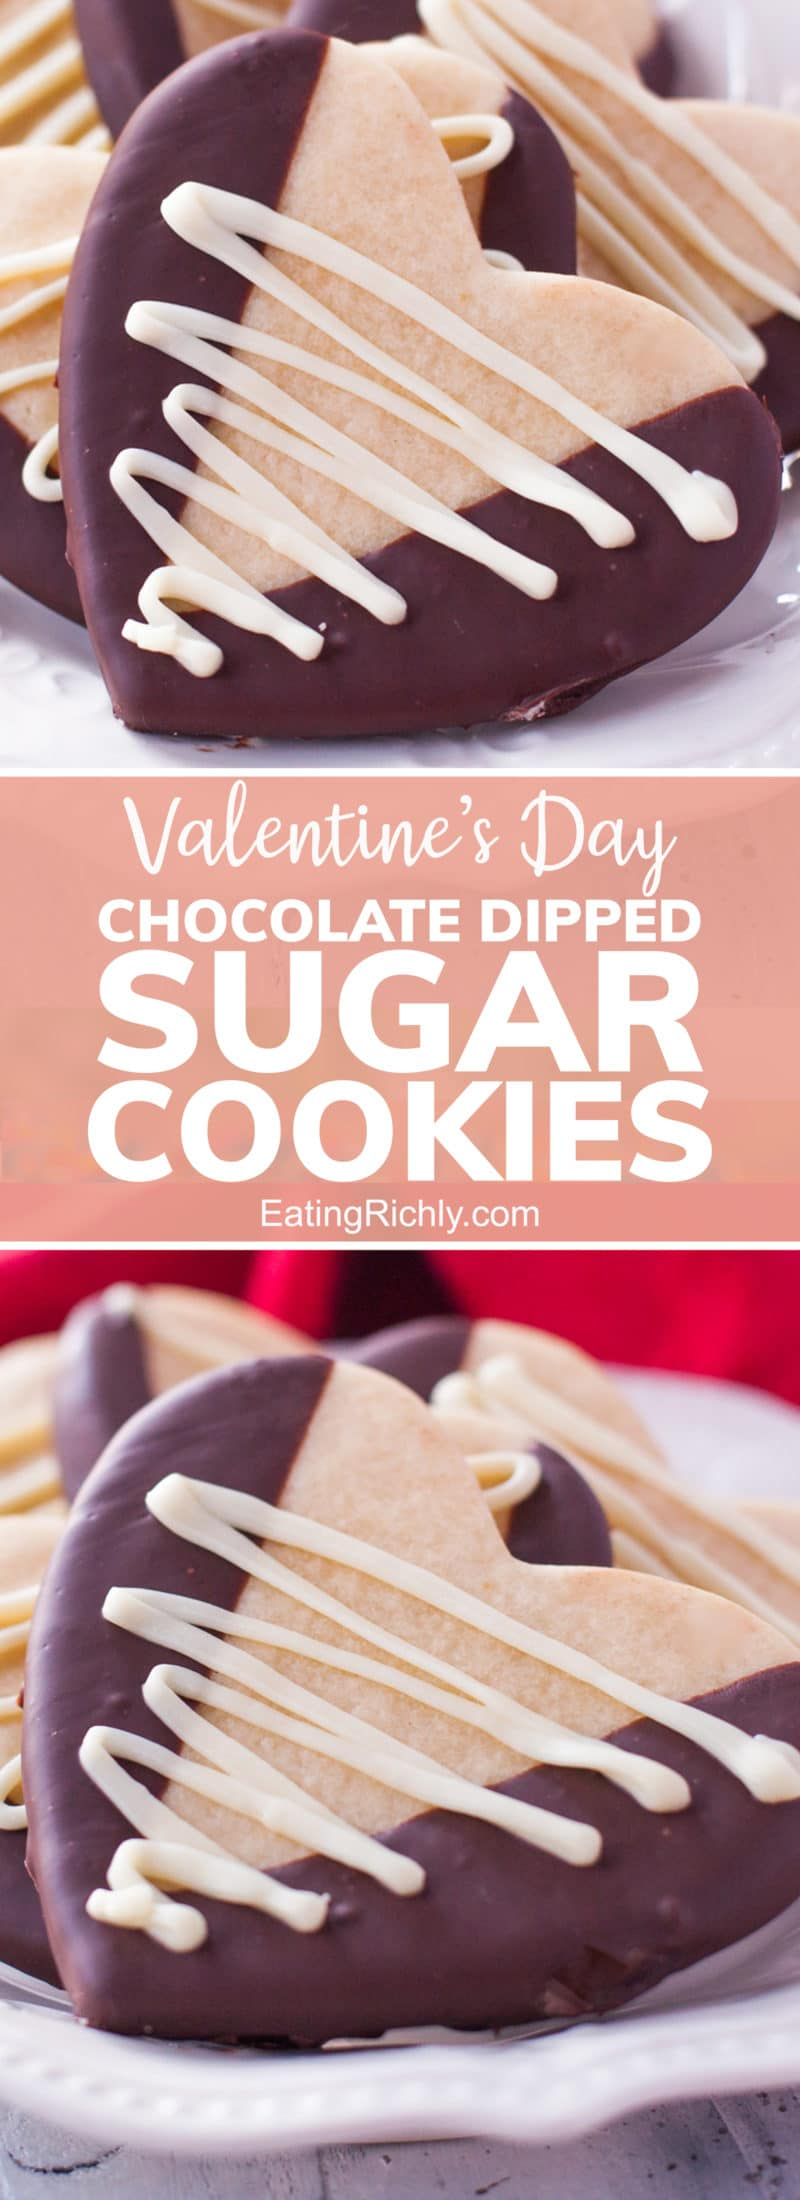 Heart shaped Valentine's Day Sugar Cookies with dark and white chocolate